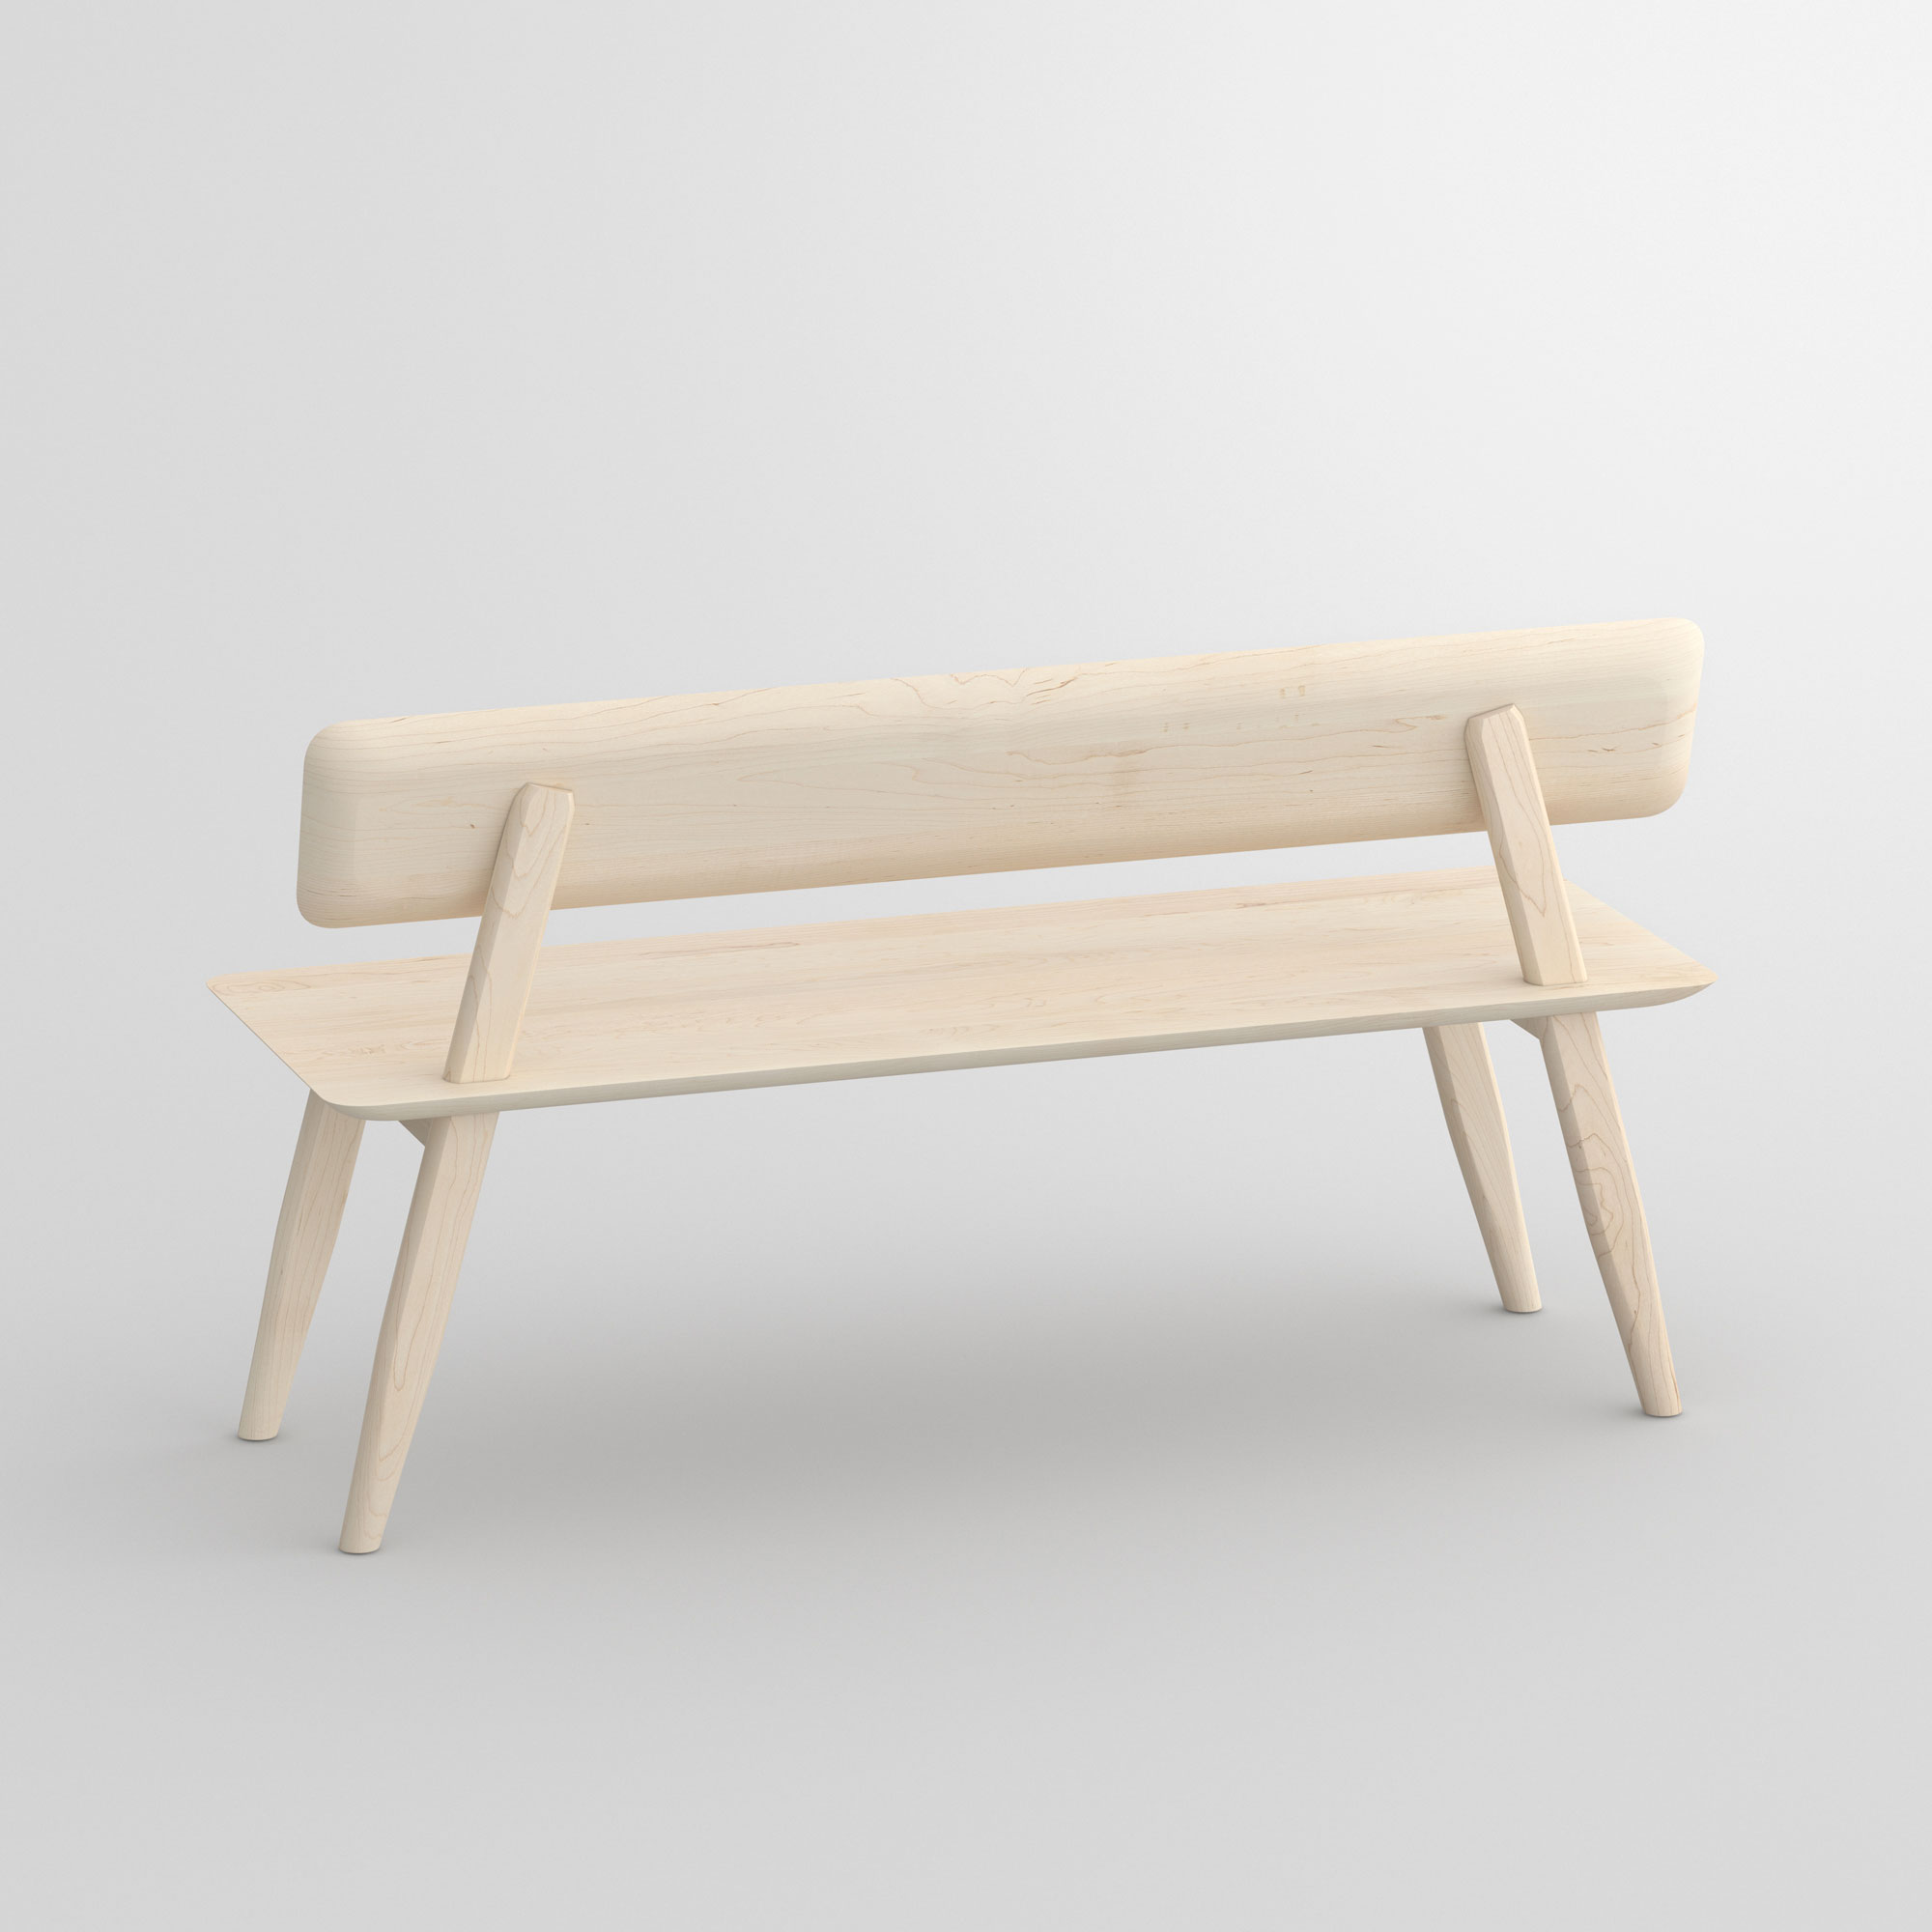 Bench with Back AETAS RL cam1 custom made in solid wood by vitamin design